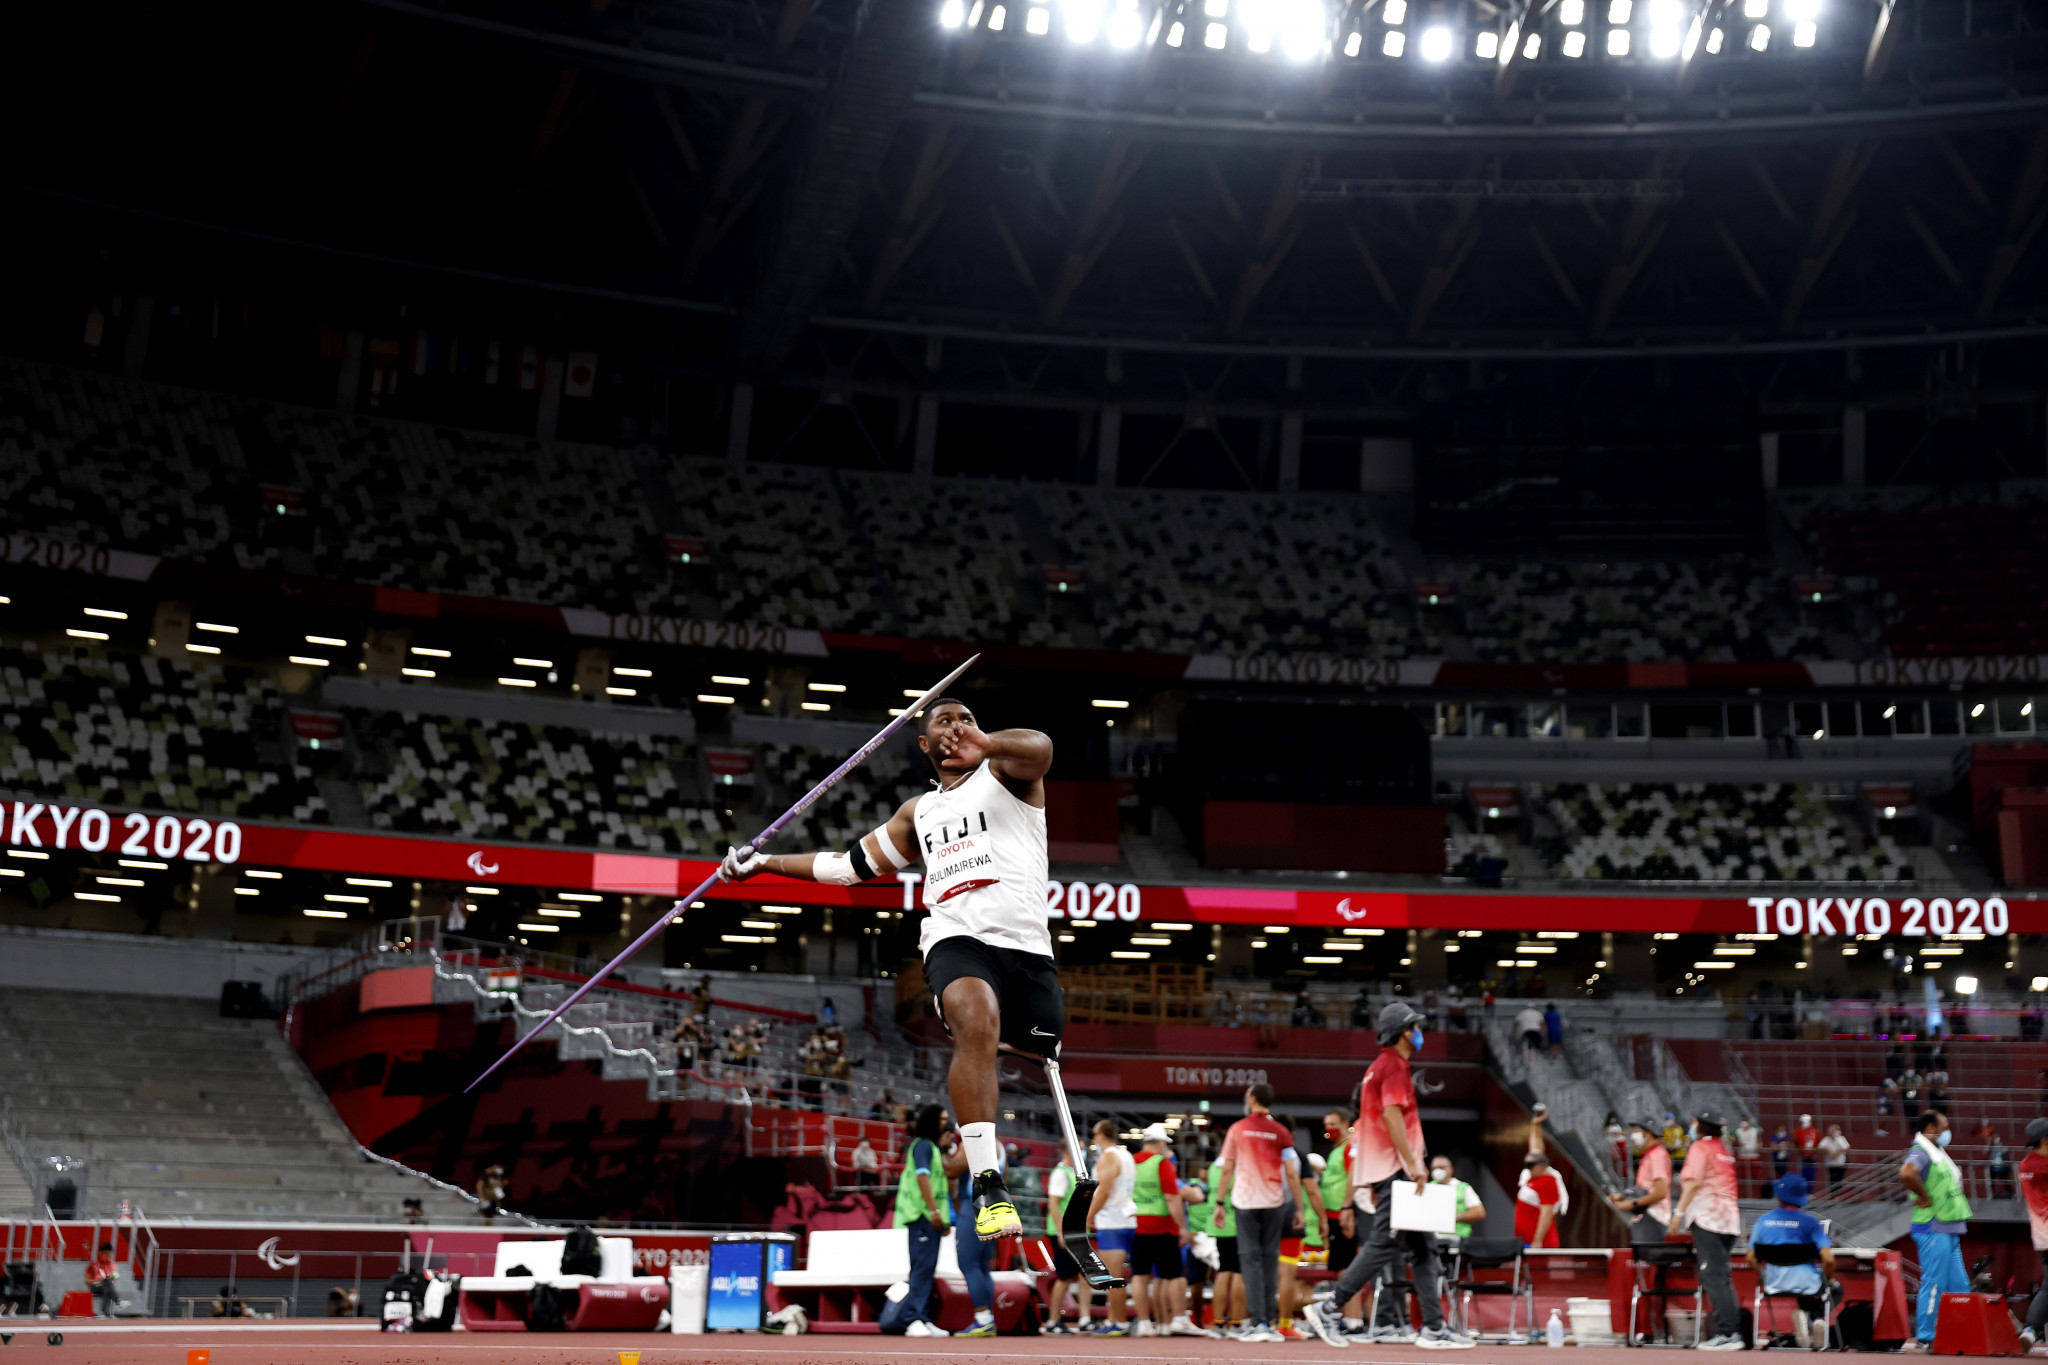 Fiji were represented by two athletes at the Tokyo 2020 Paralympics ©Getty Images